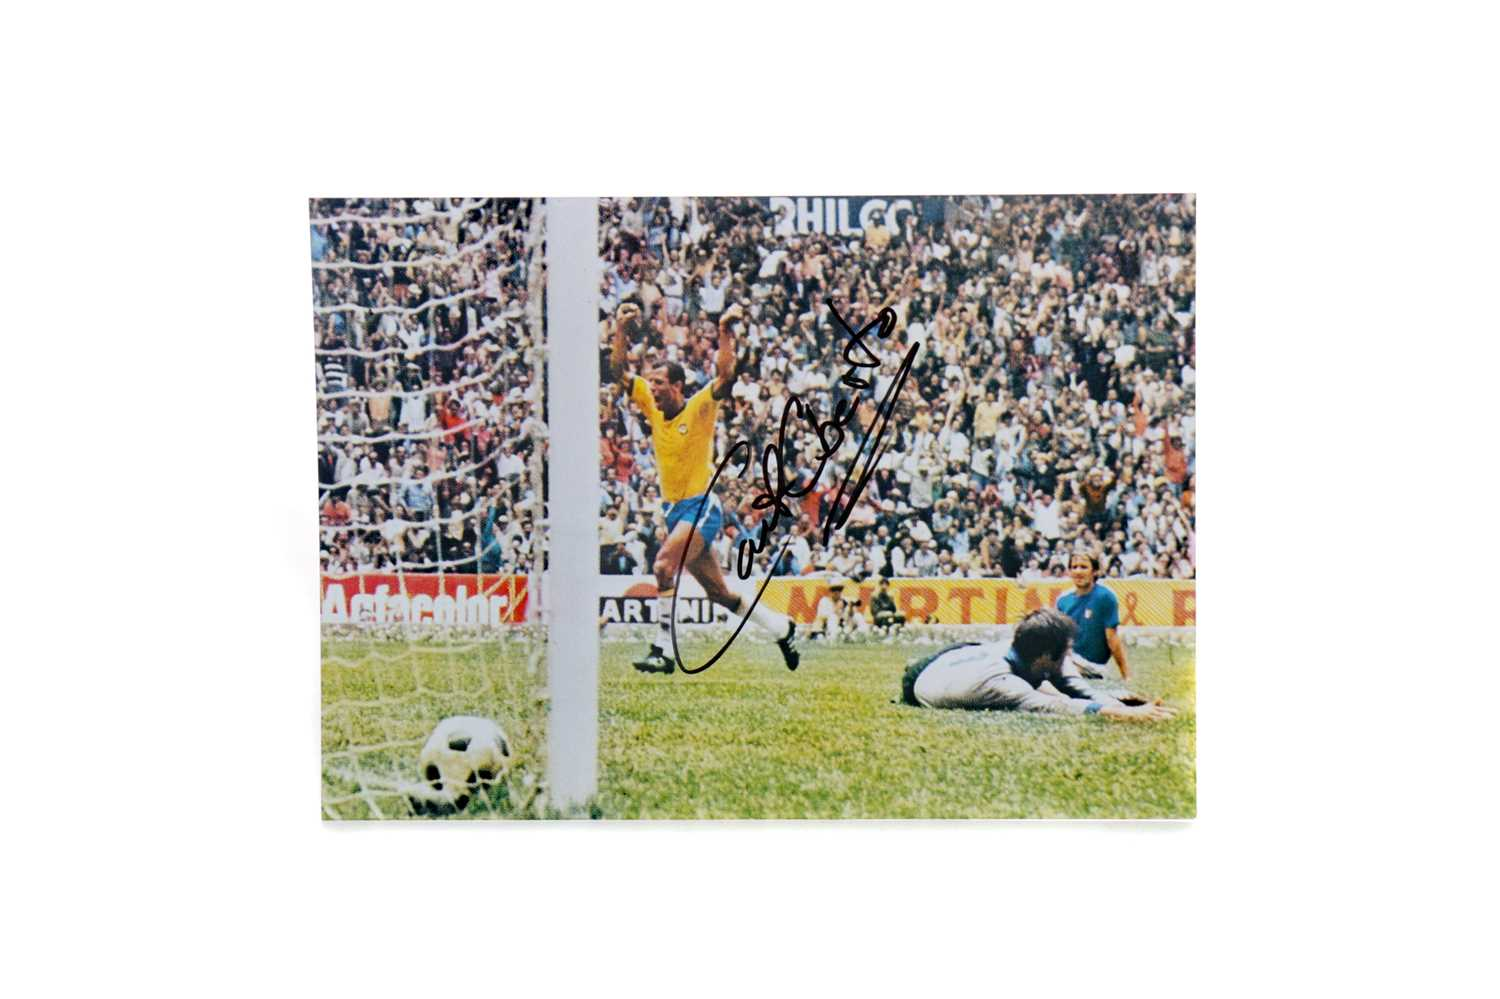 Lot 1754 - AN AUTOGRAPHED PHOTOGRAPH OF CARLOS ALBERTO